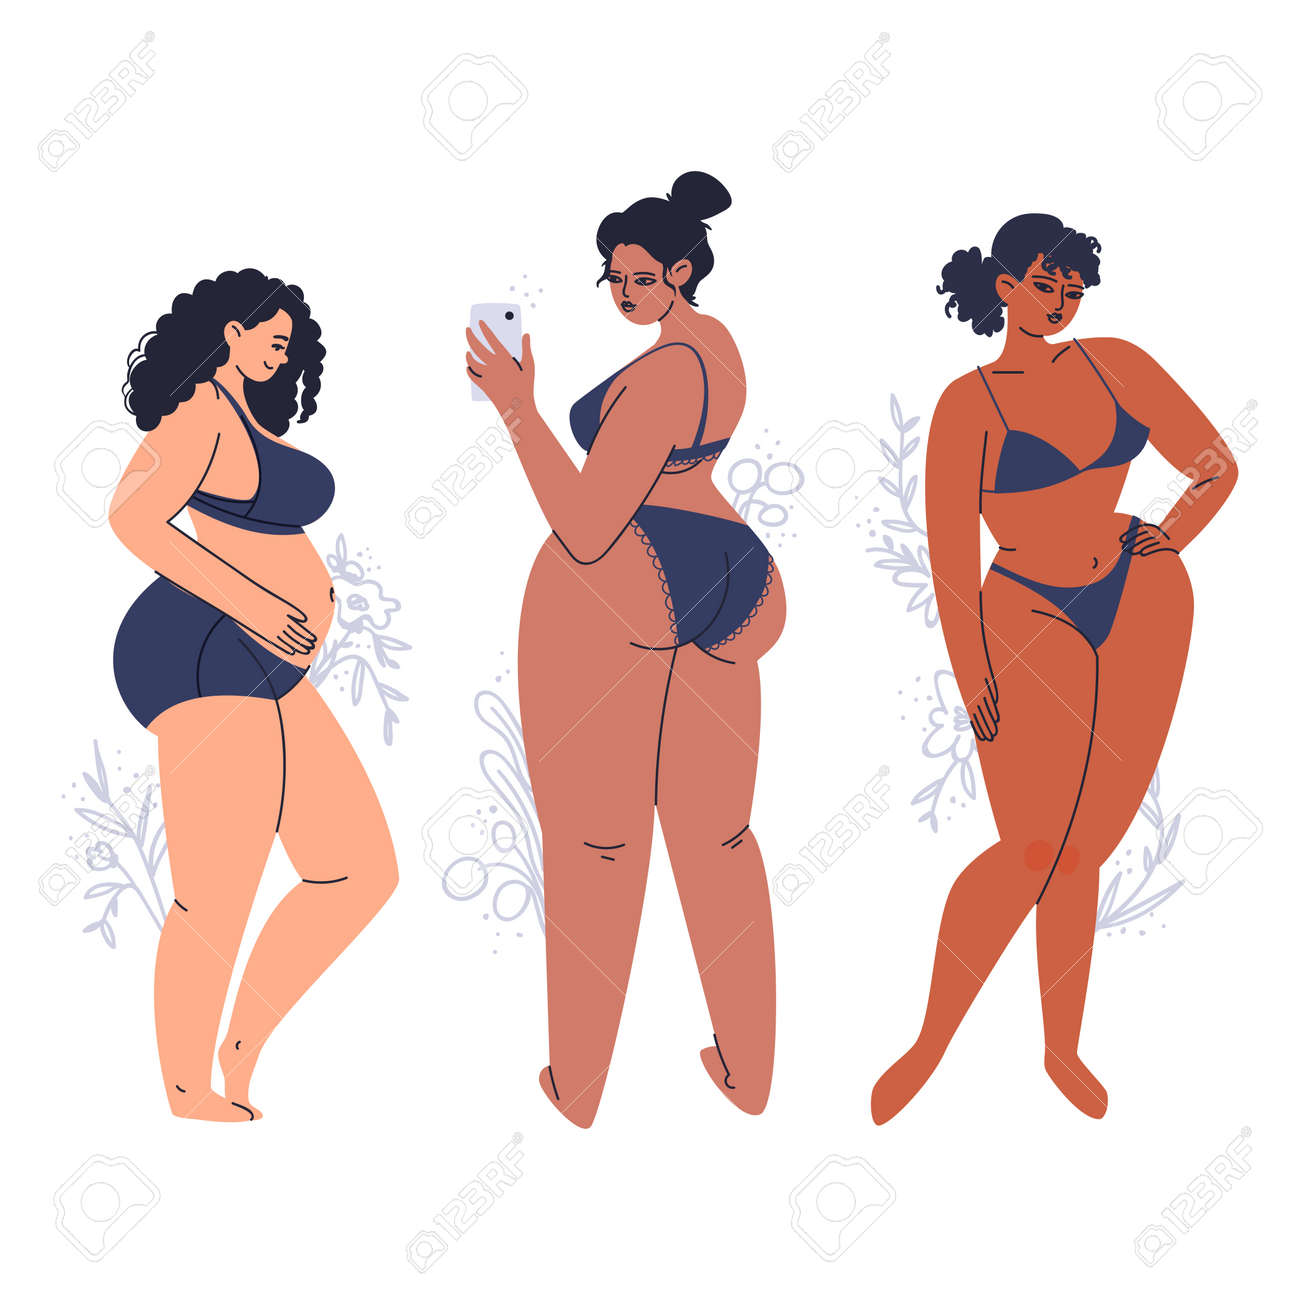 Young tanned women posing in lingerie. A variety of full-bodied adult girls in dark swimwear. Hand-drawn plus size brunettes with flowers. Vector stock illustration isolated on white background. - 164388190